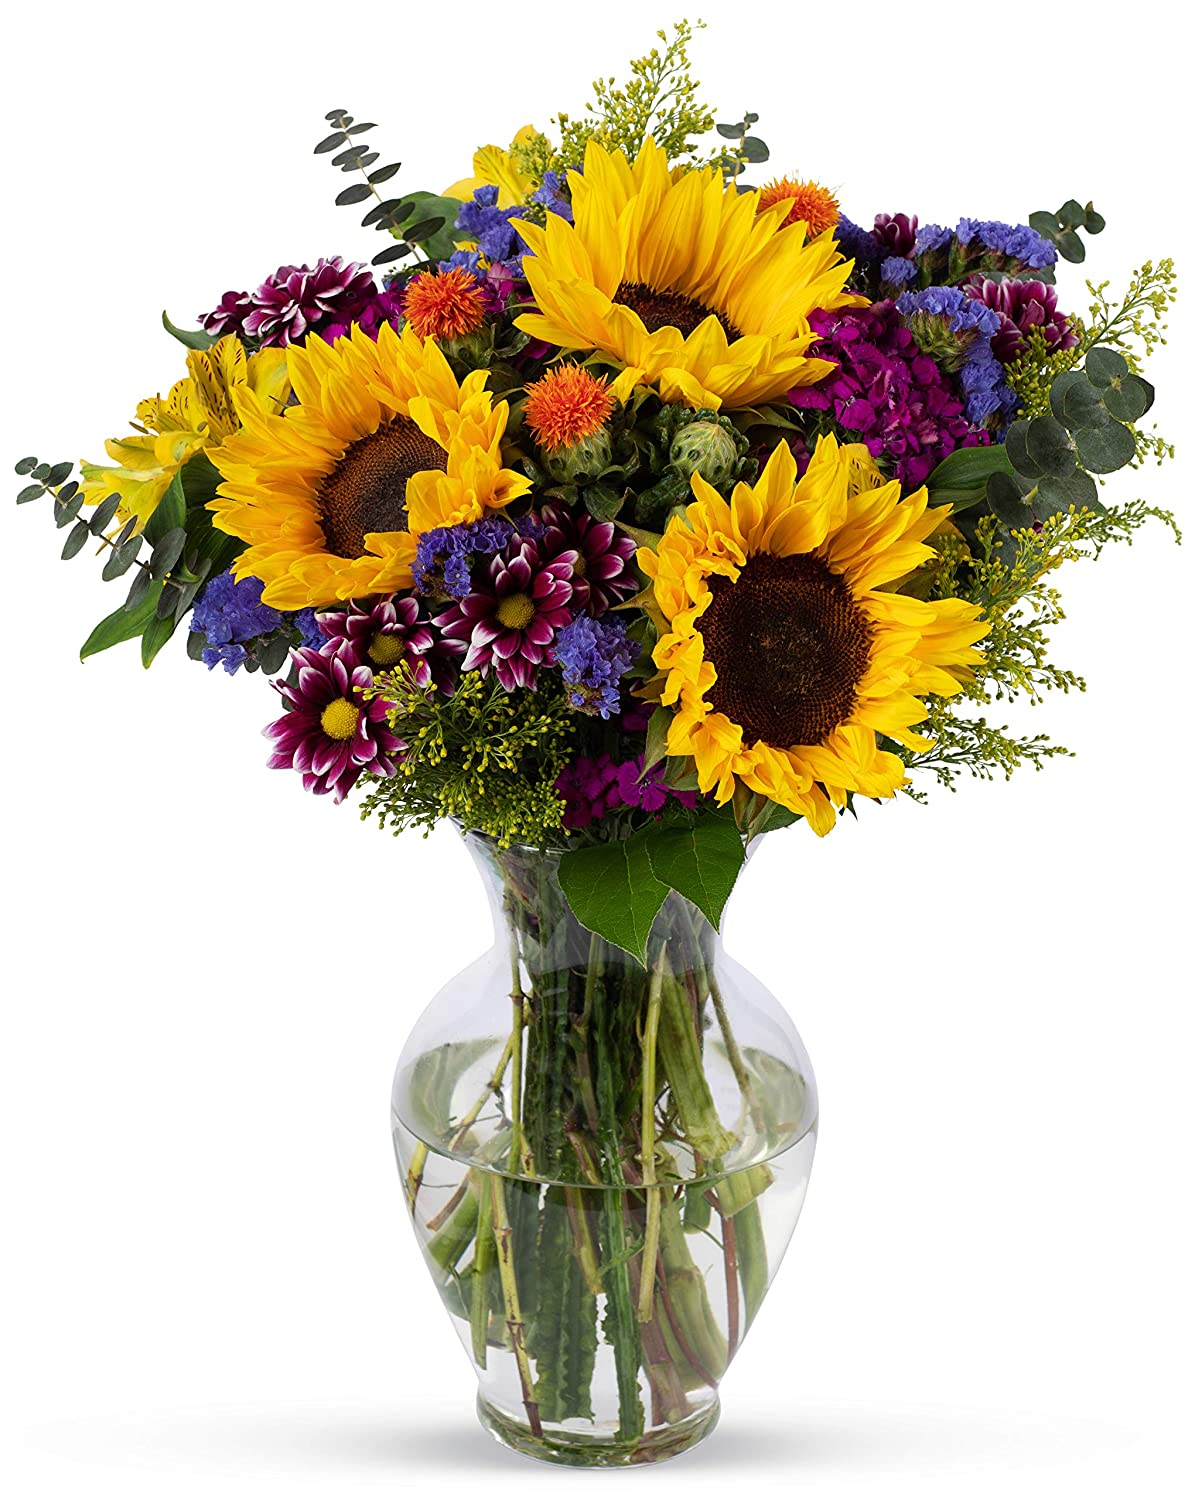 251 & Benchmark Bouquets Flowering Fields With Vase (Fresh Cut Flowers)